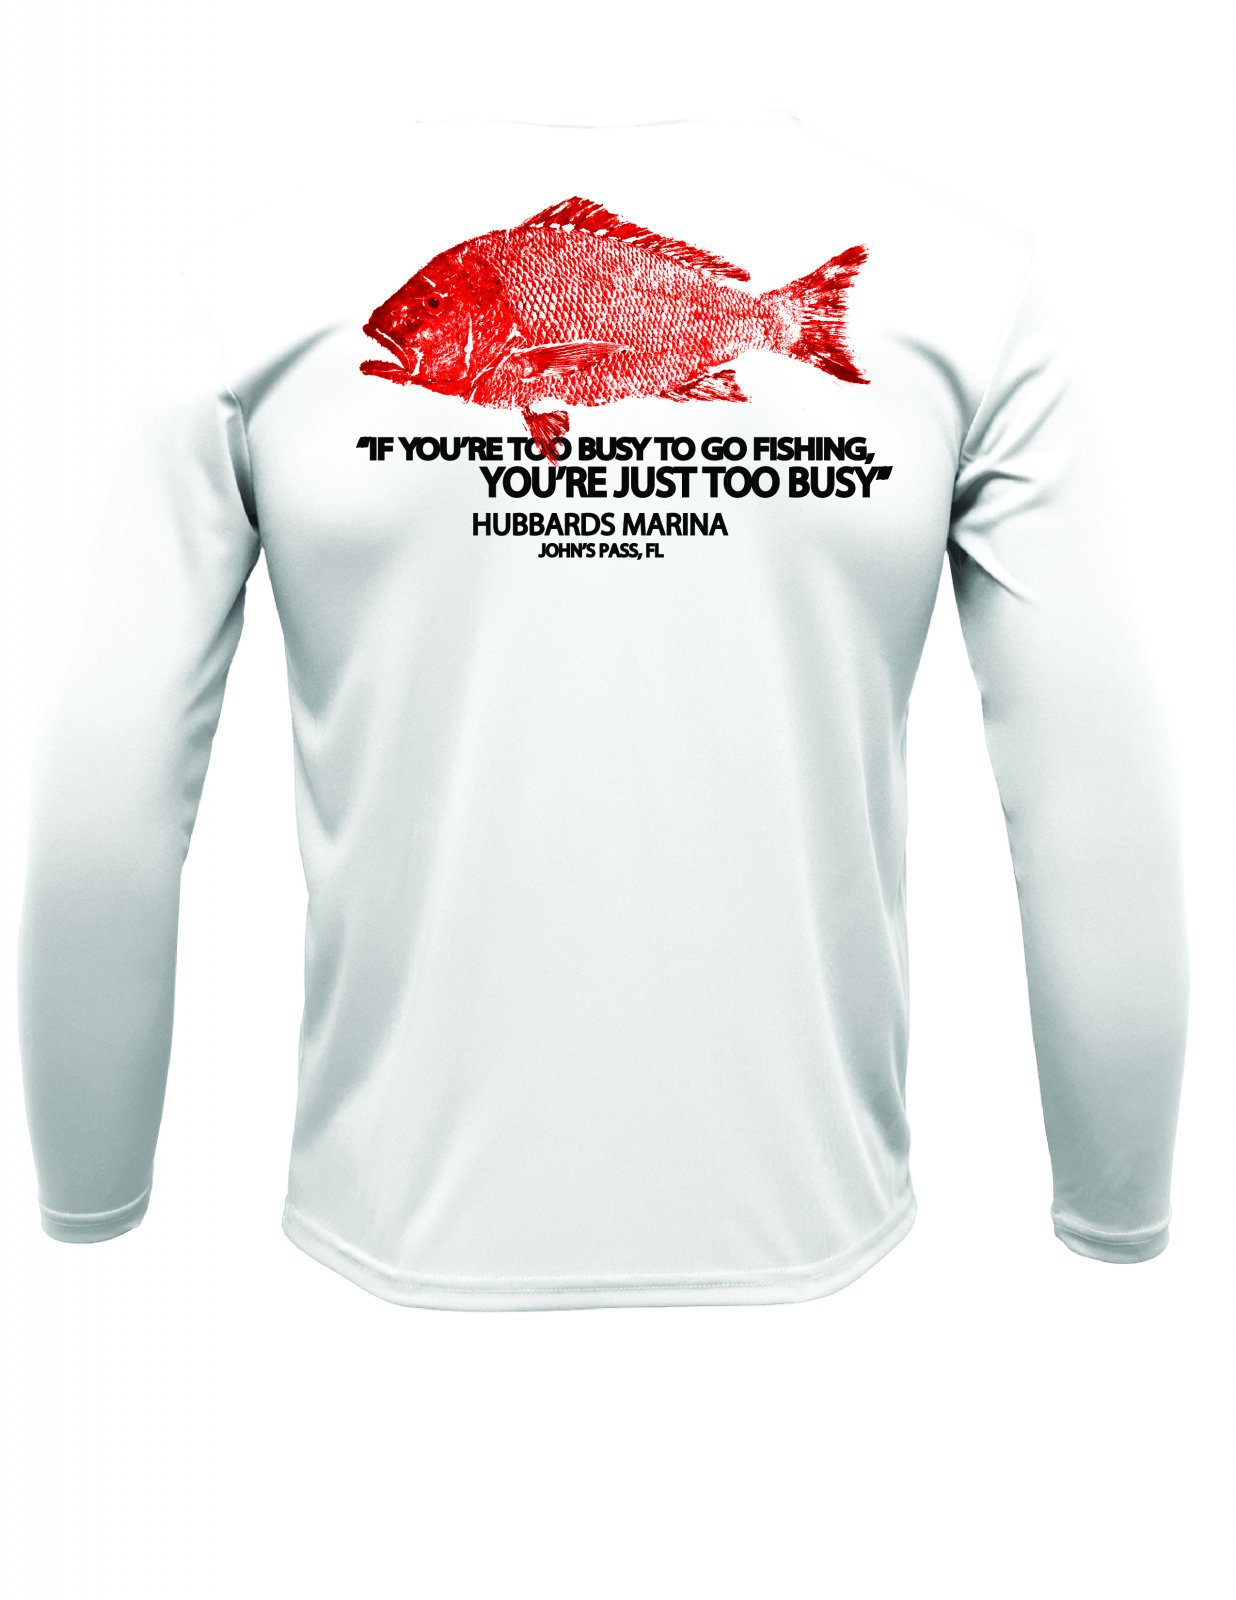 If you are too busy... Performance Shirt